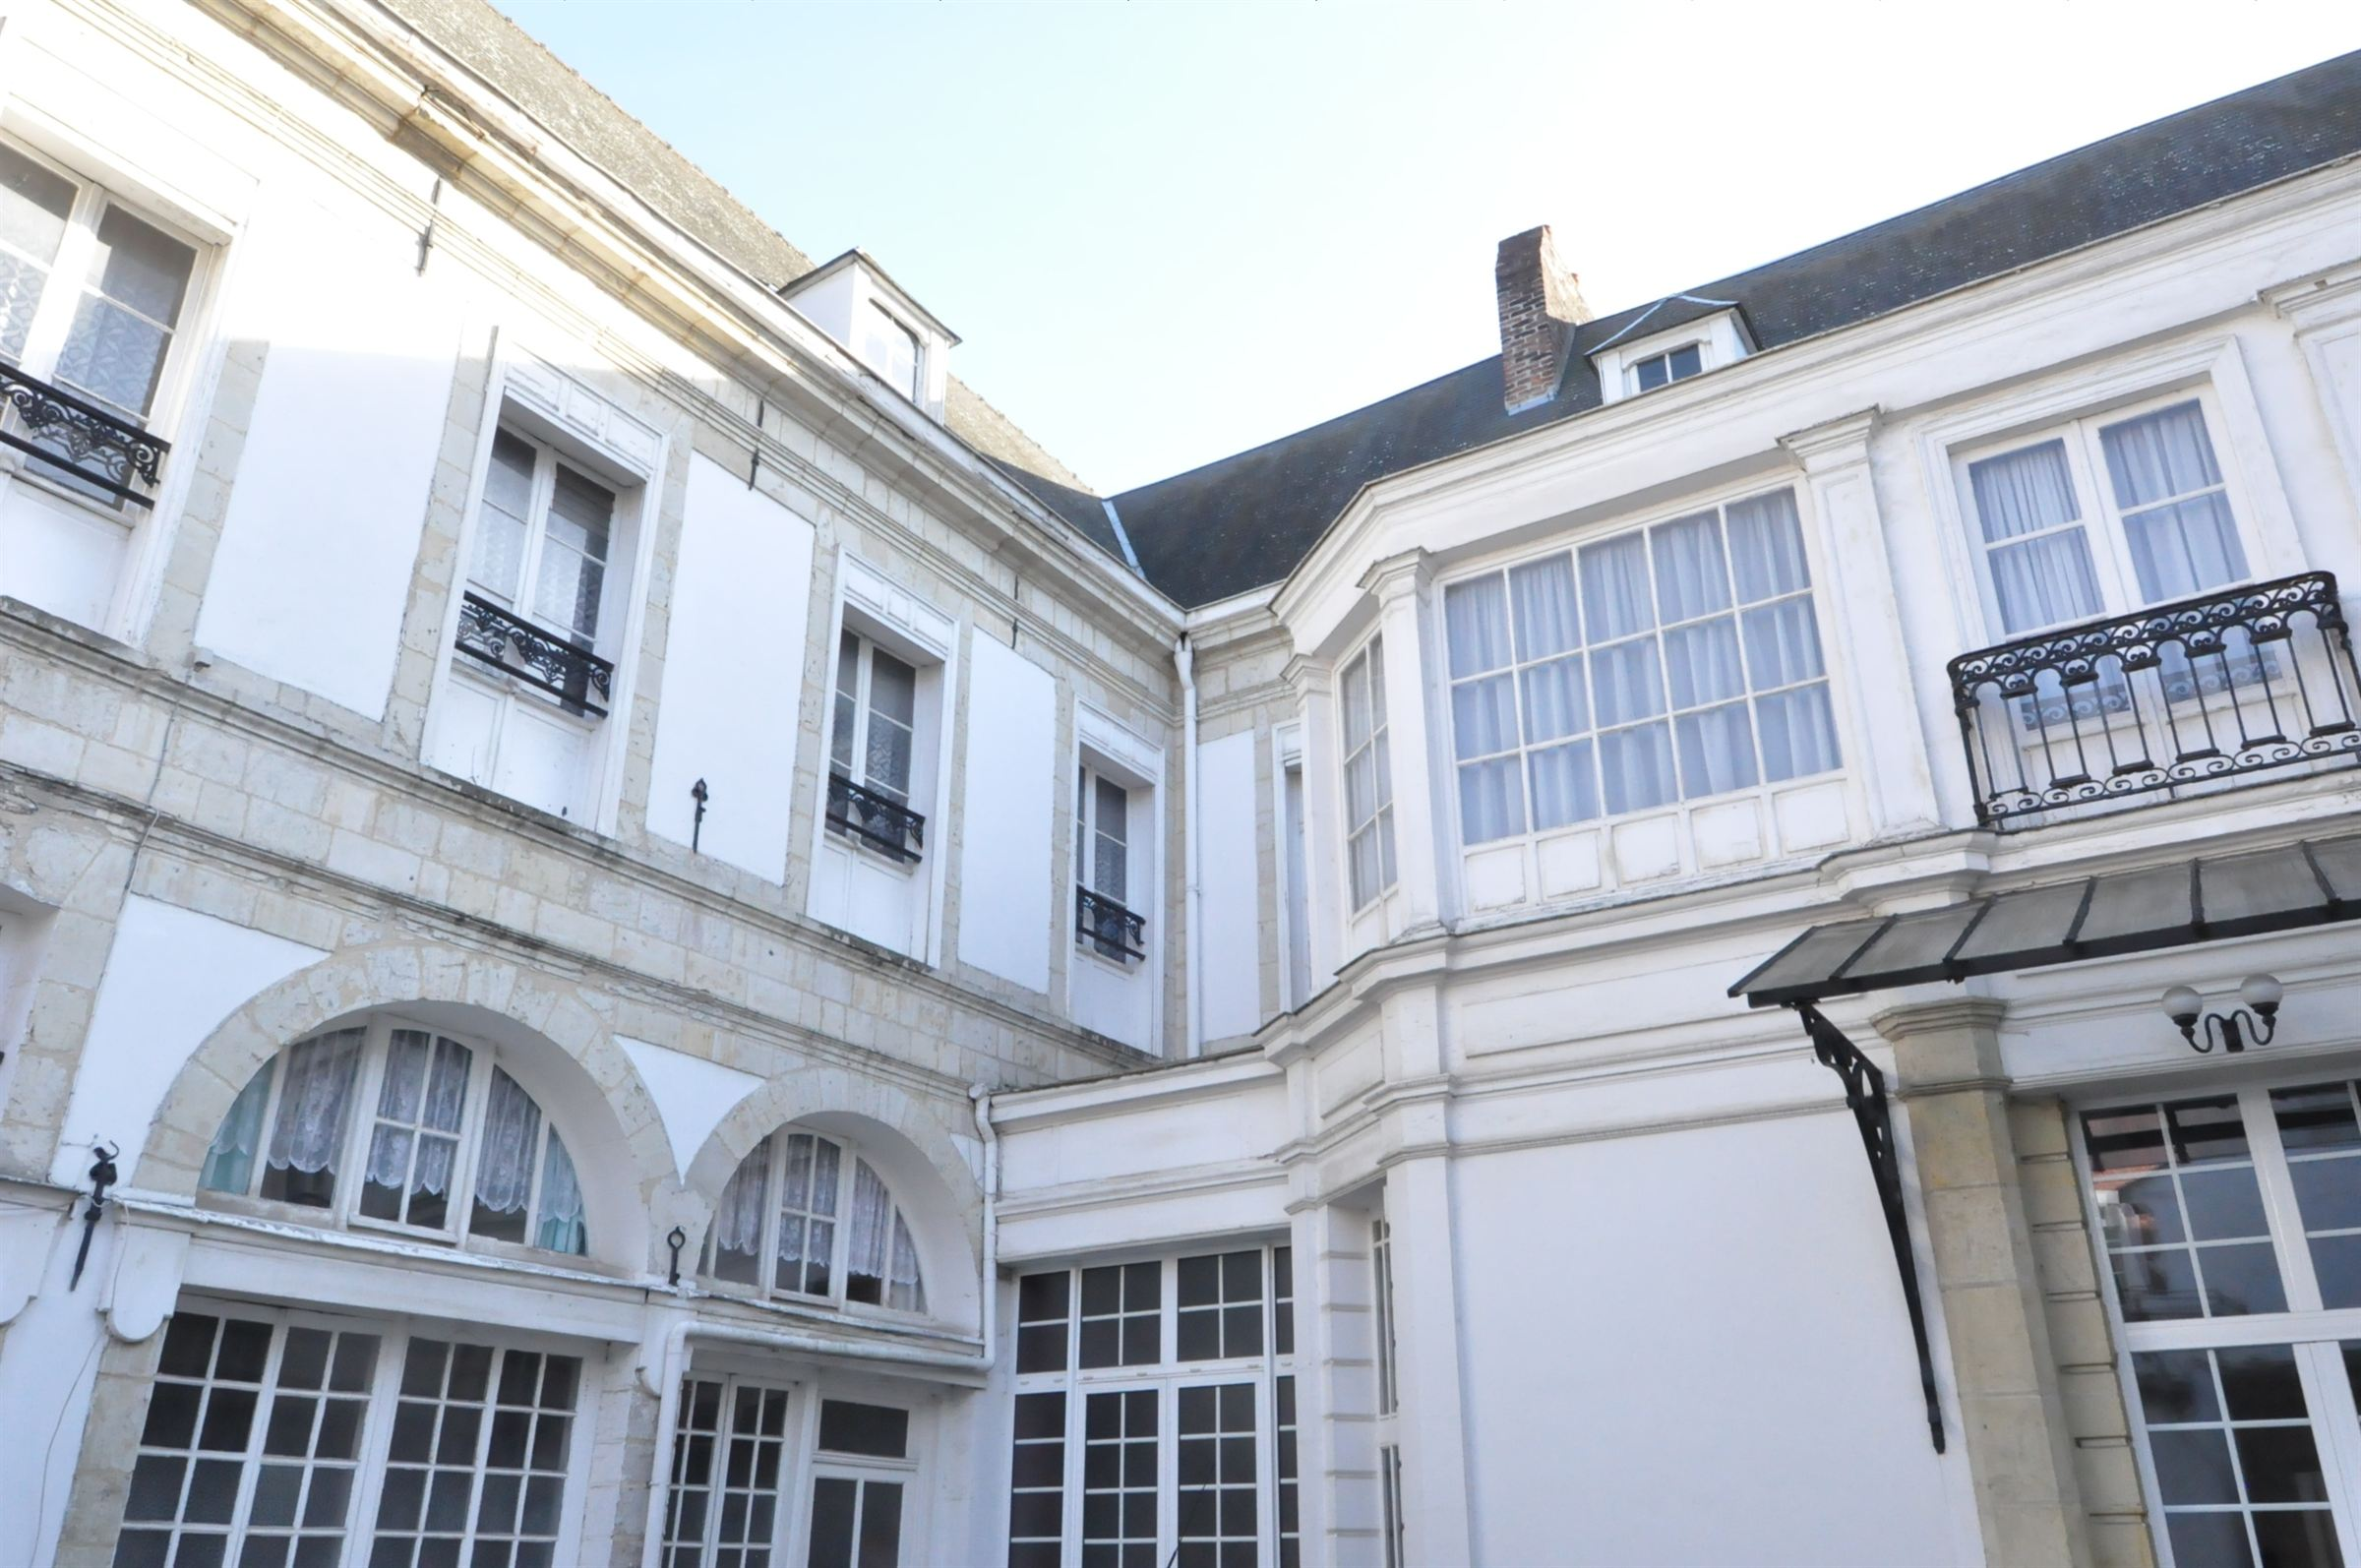 Property For Sale at DOUAI Centre, Hôtel Particulier 1800 m2 hab. 13 ch